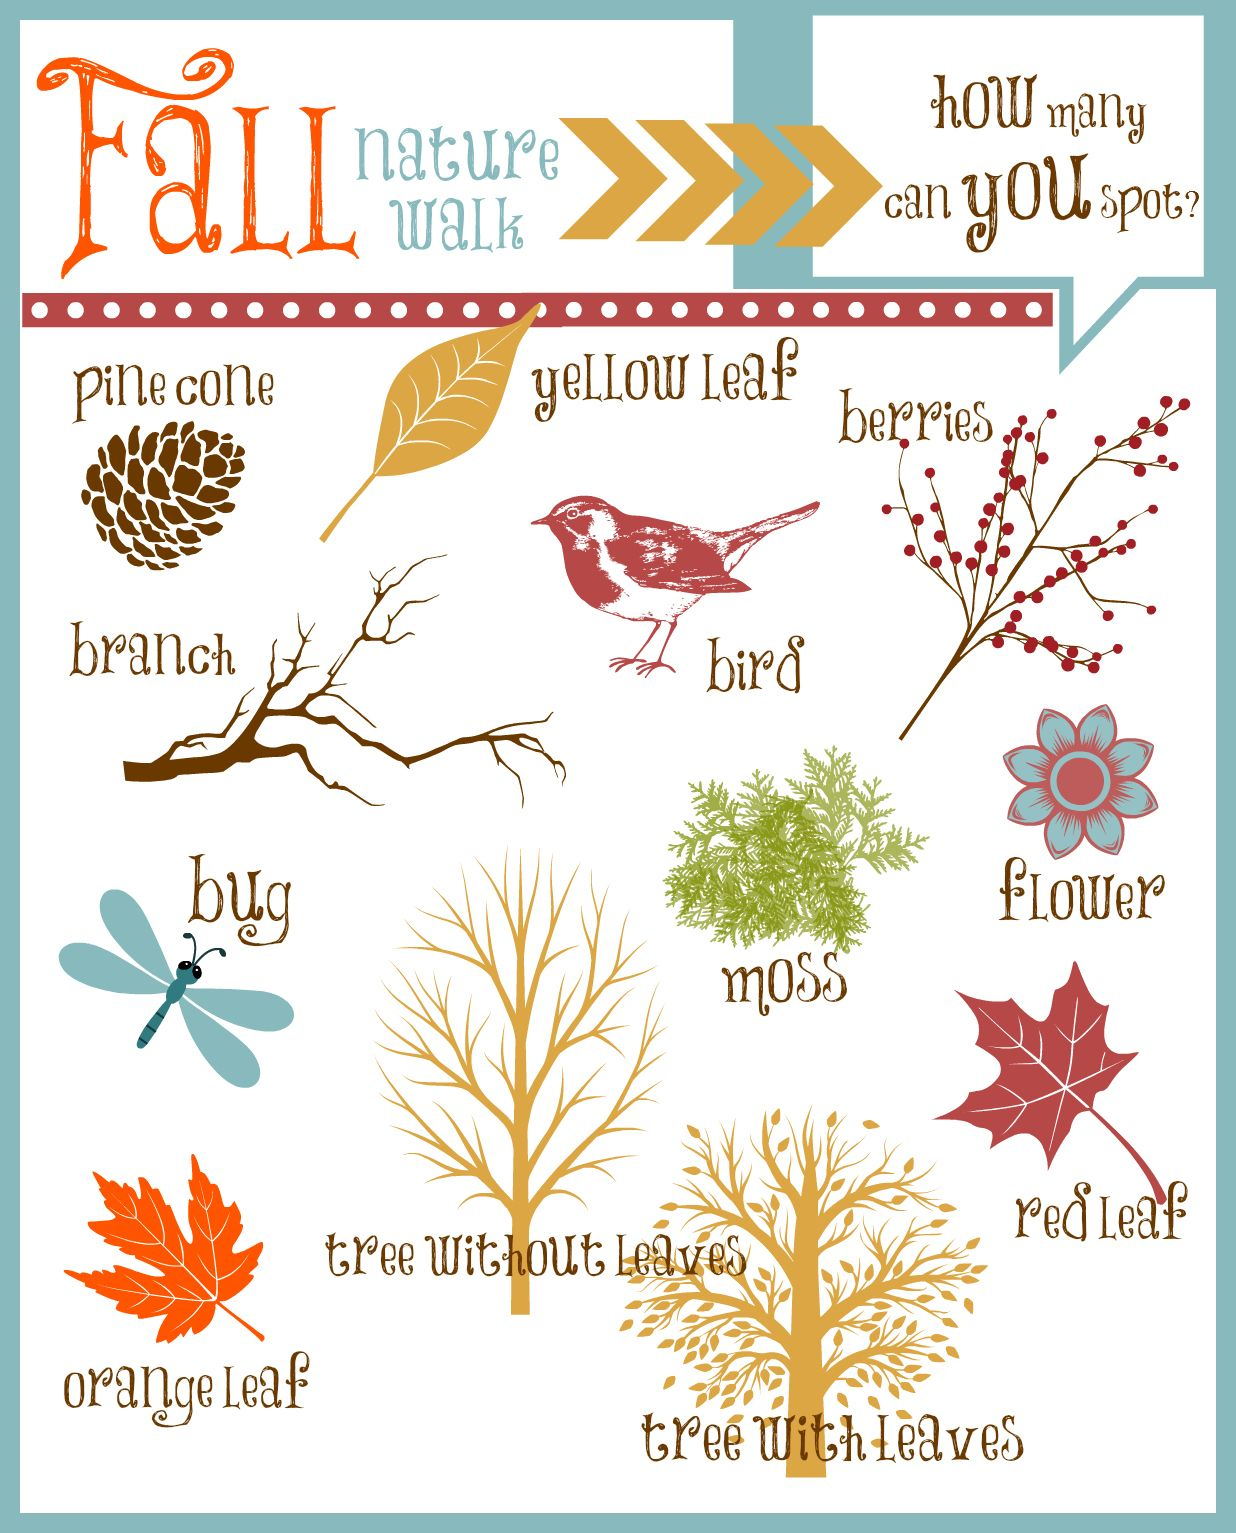 Nature Walk Printable Fun Fall Activity For Kids With